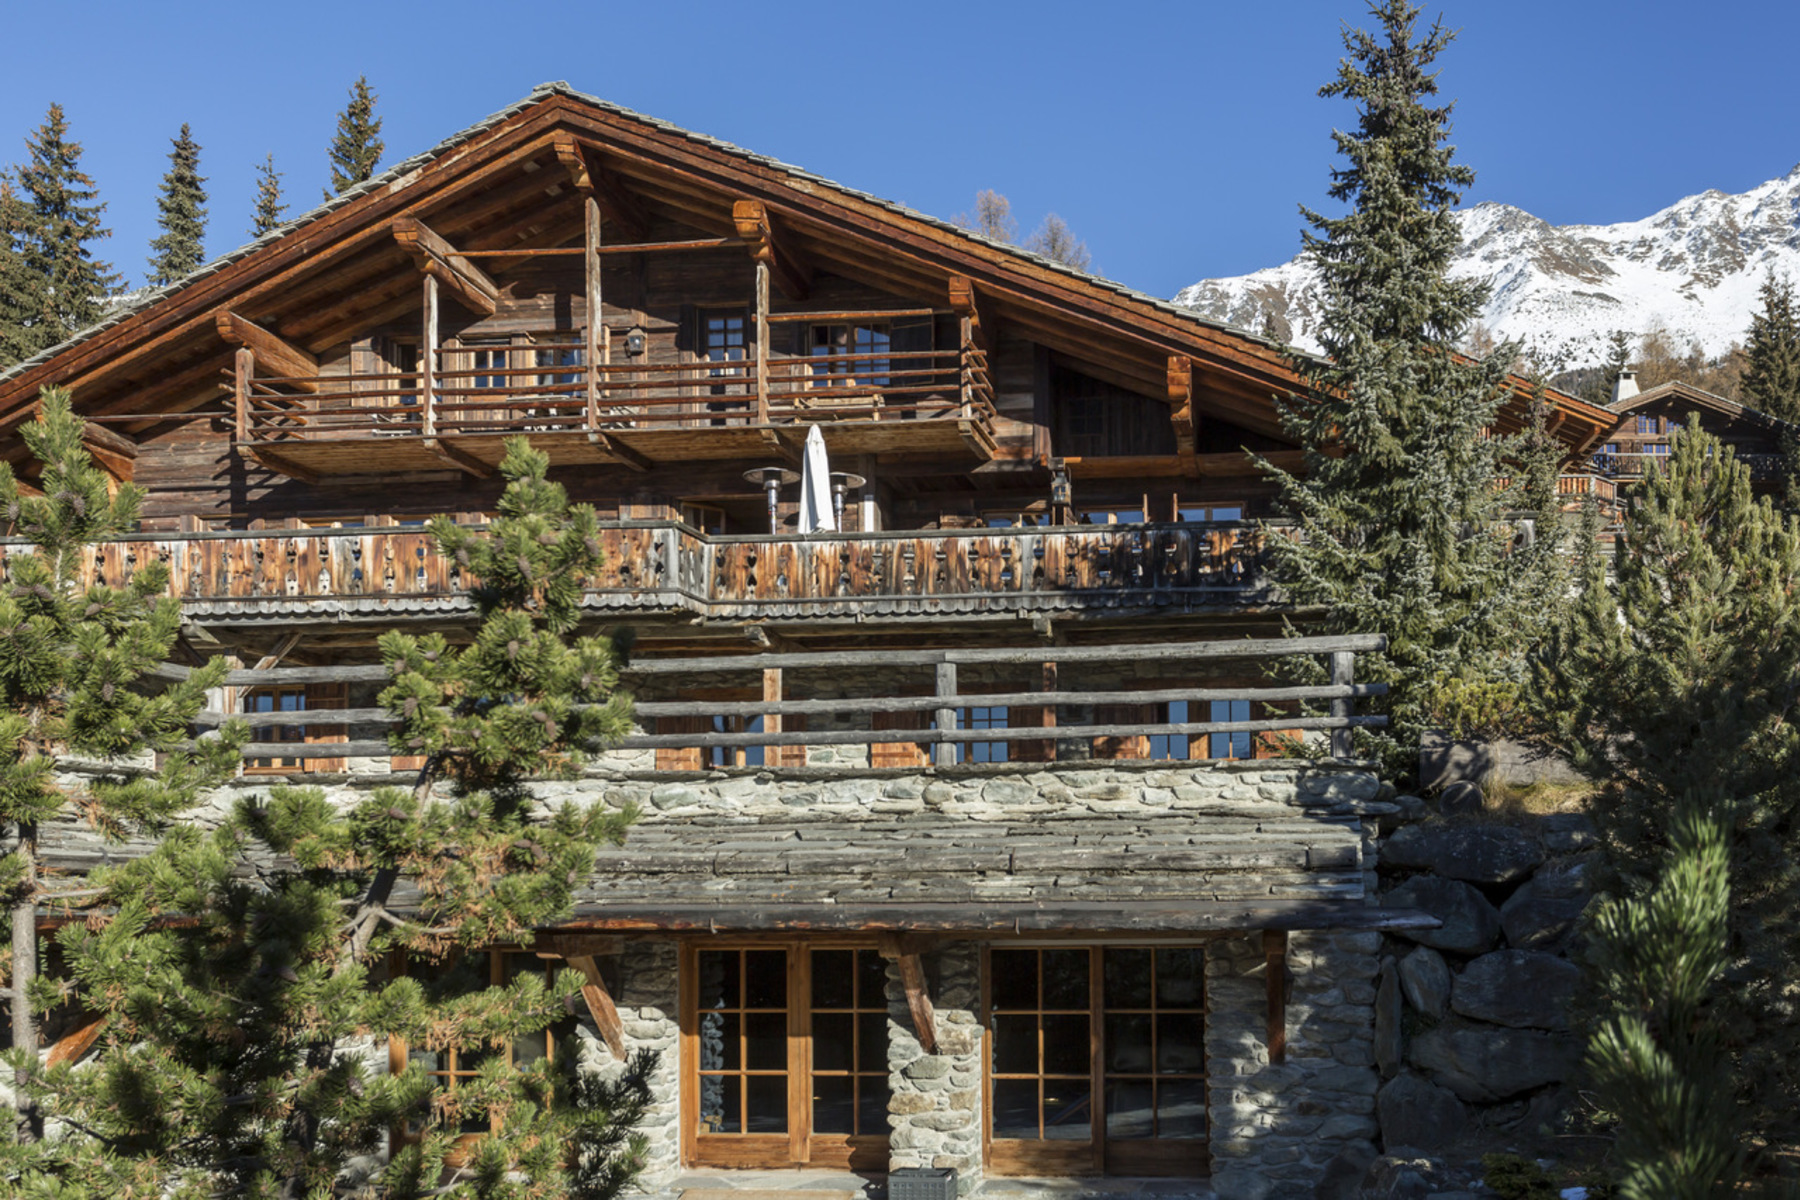 Single Family Home for Sale at Chalet BEL HORIZON Verbier Verbier, Valais 1936 Switzerland